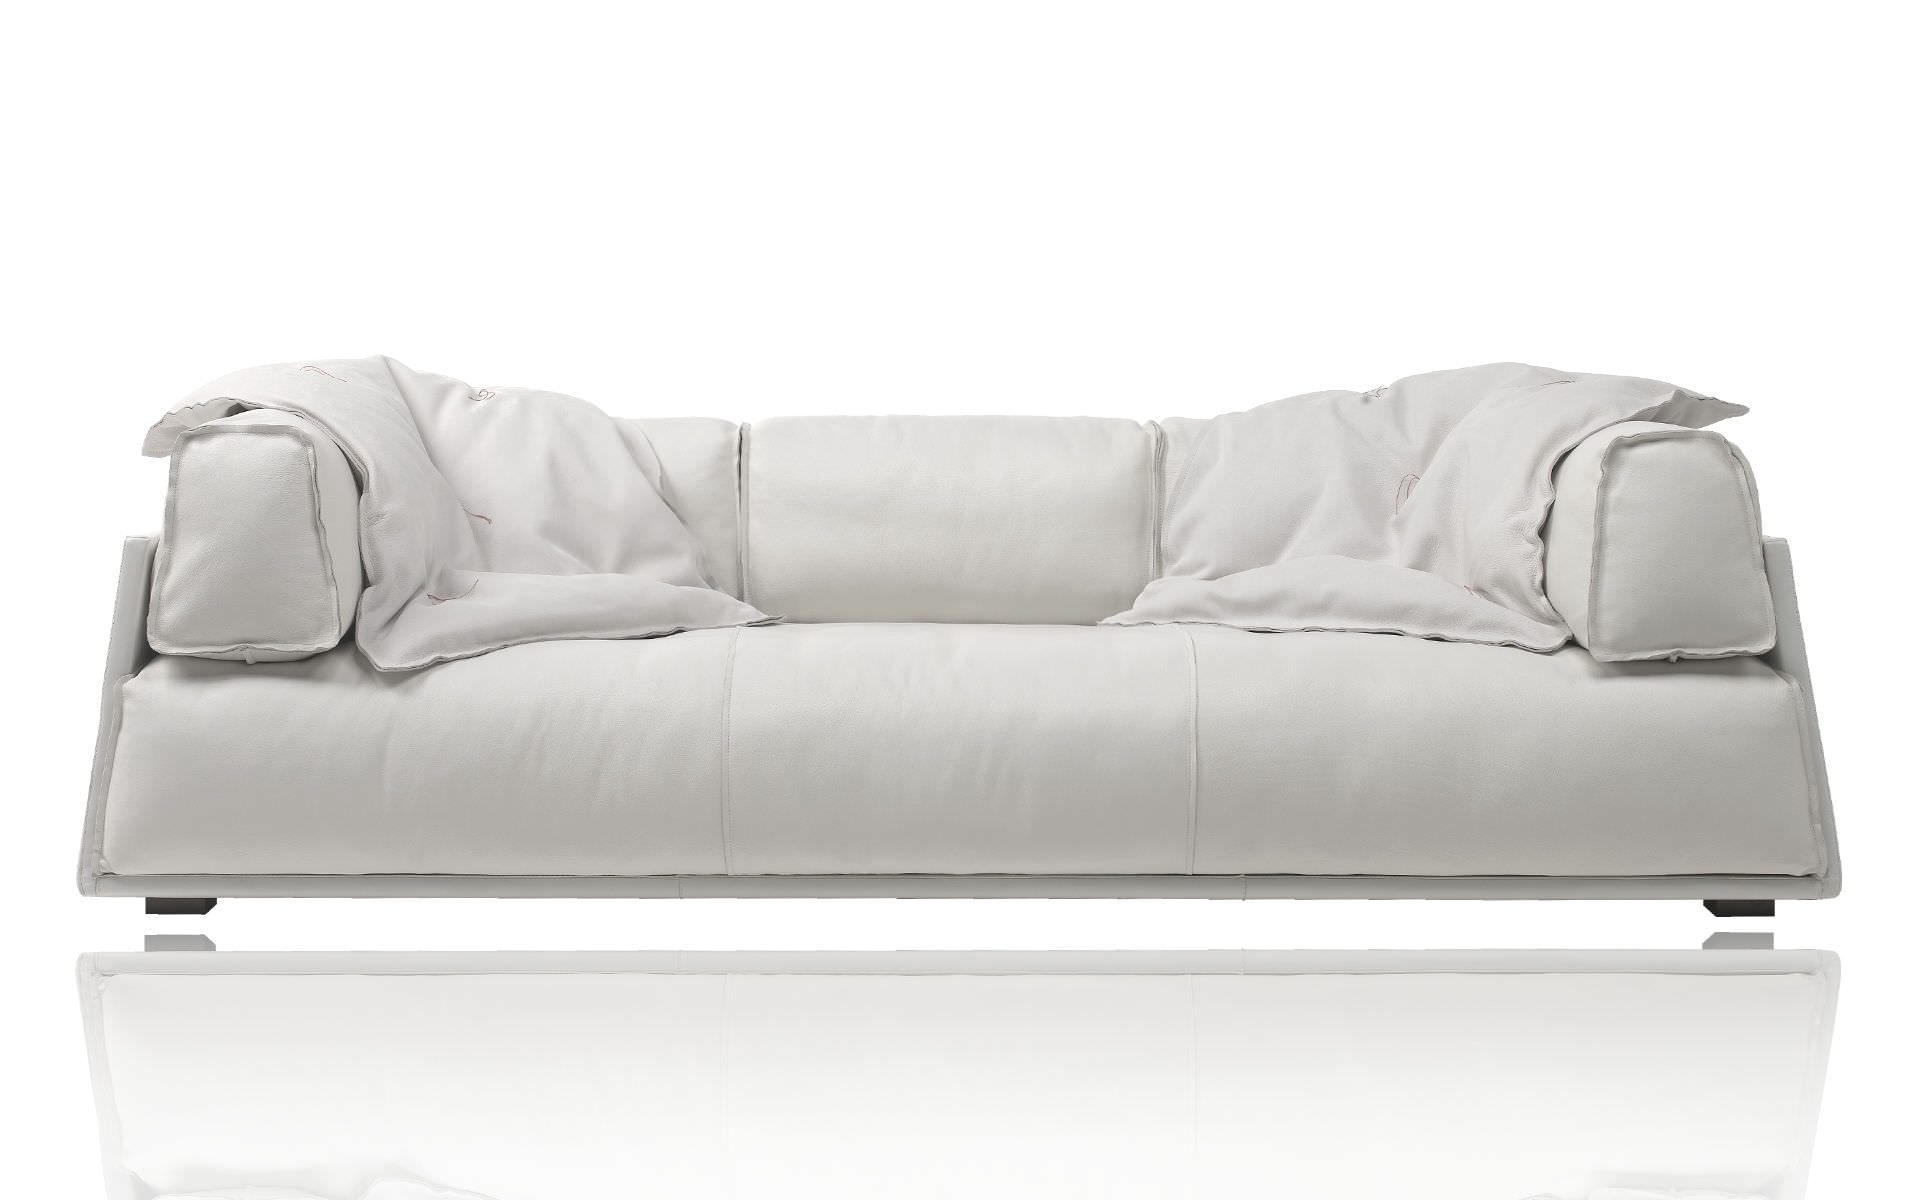 Contemporary Leather Sofa – Hard & Softpaola Navone – Baxter In Soft Sofas (Image 5 of 10)